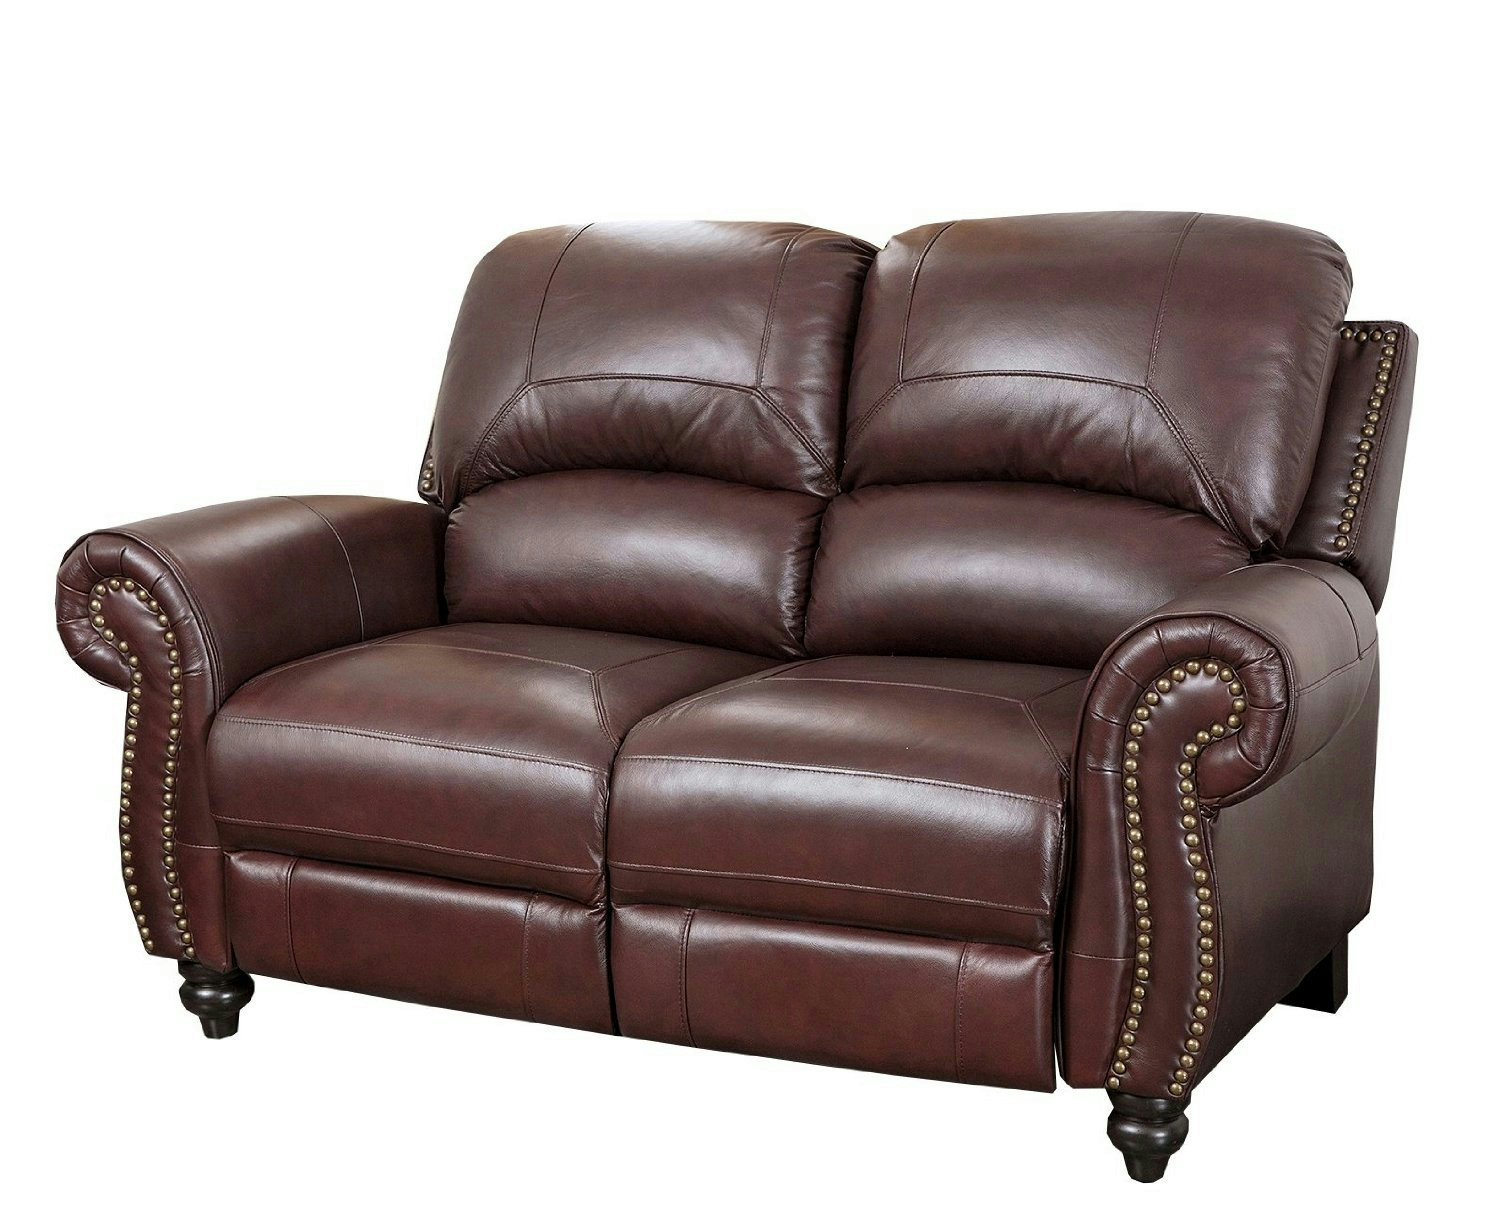 Abbyson living durham leather pushback reclining loveseat for Abbyson living sedona leather chaise recliner